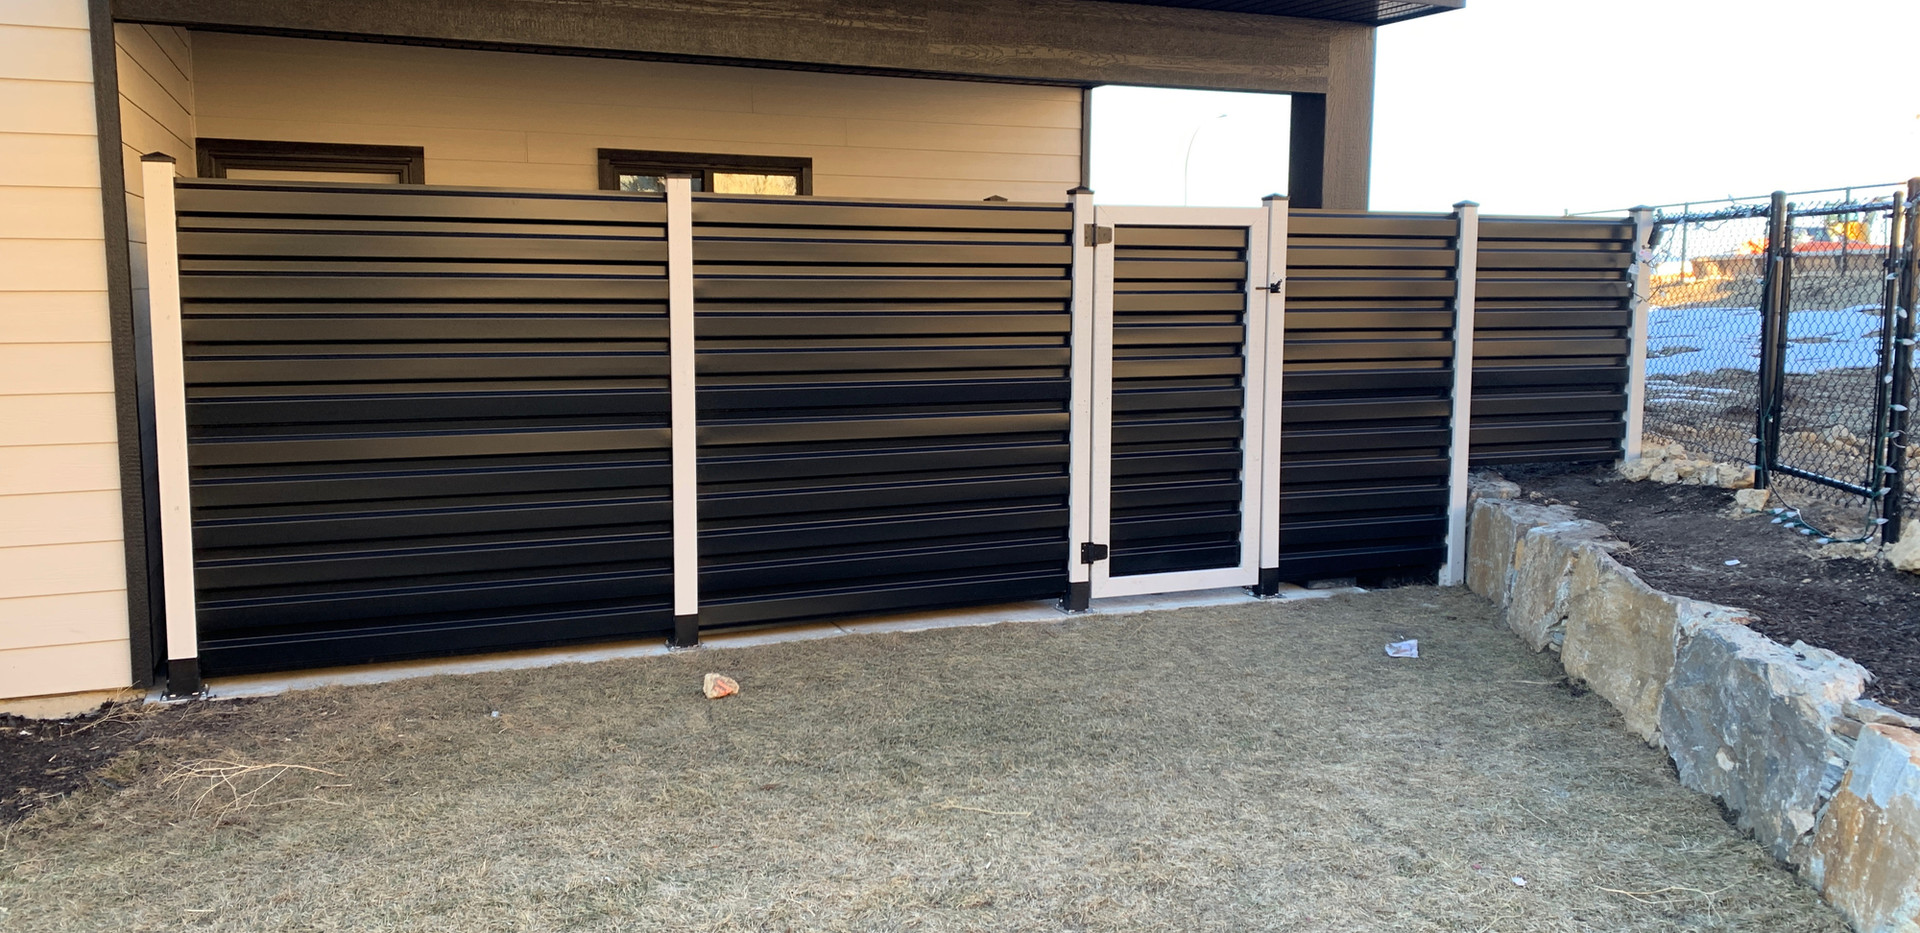 Black and white corrugated metal fence